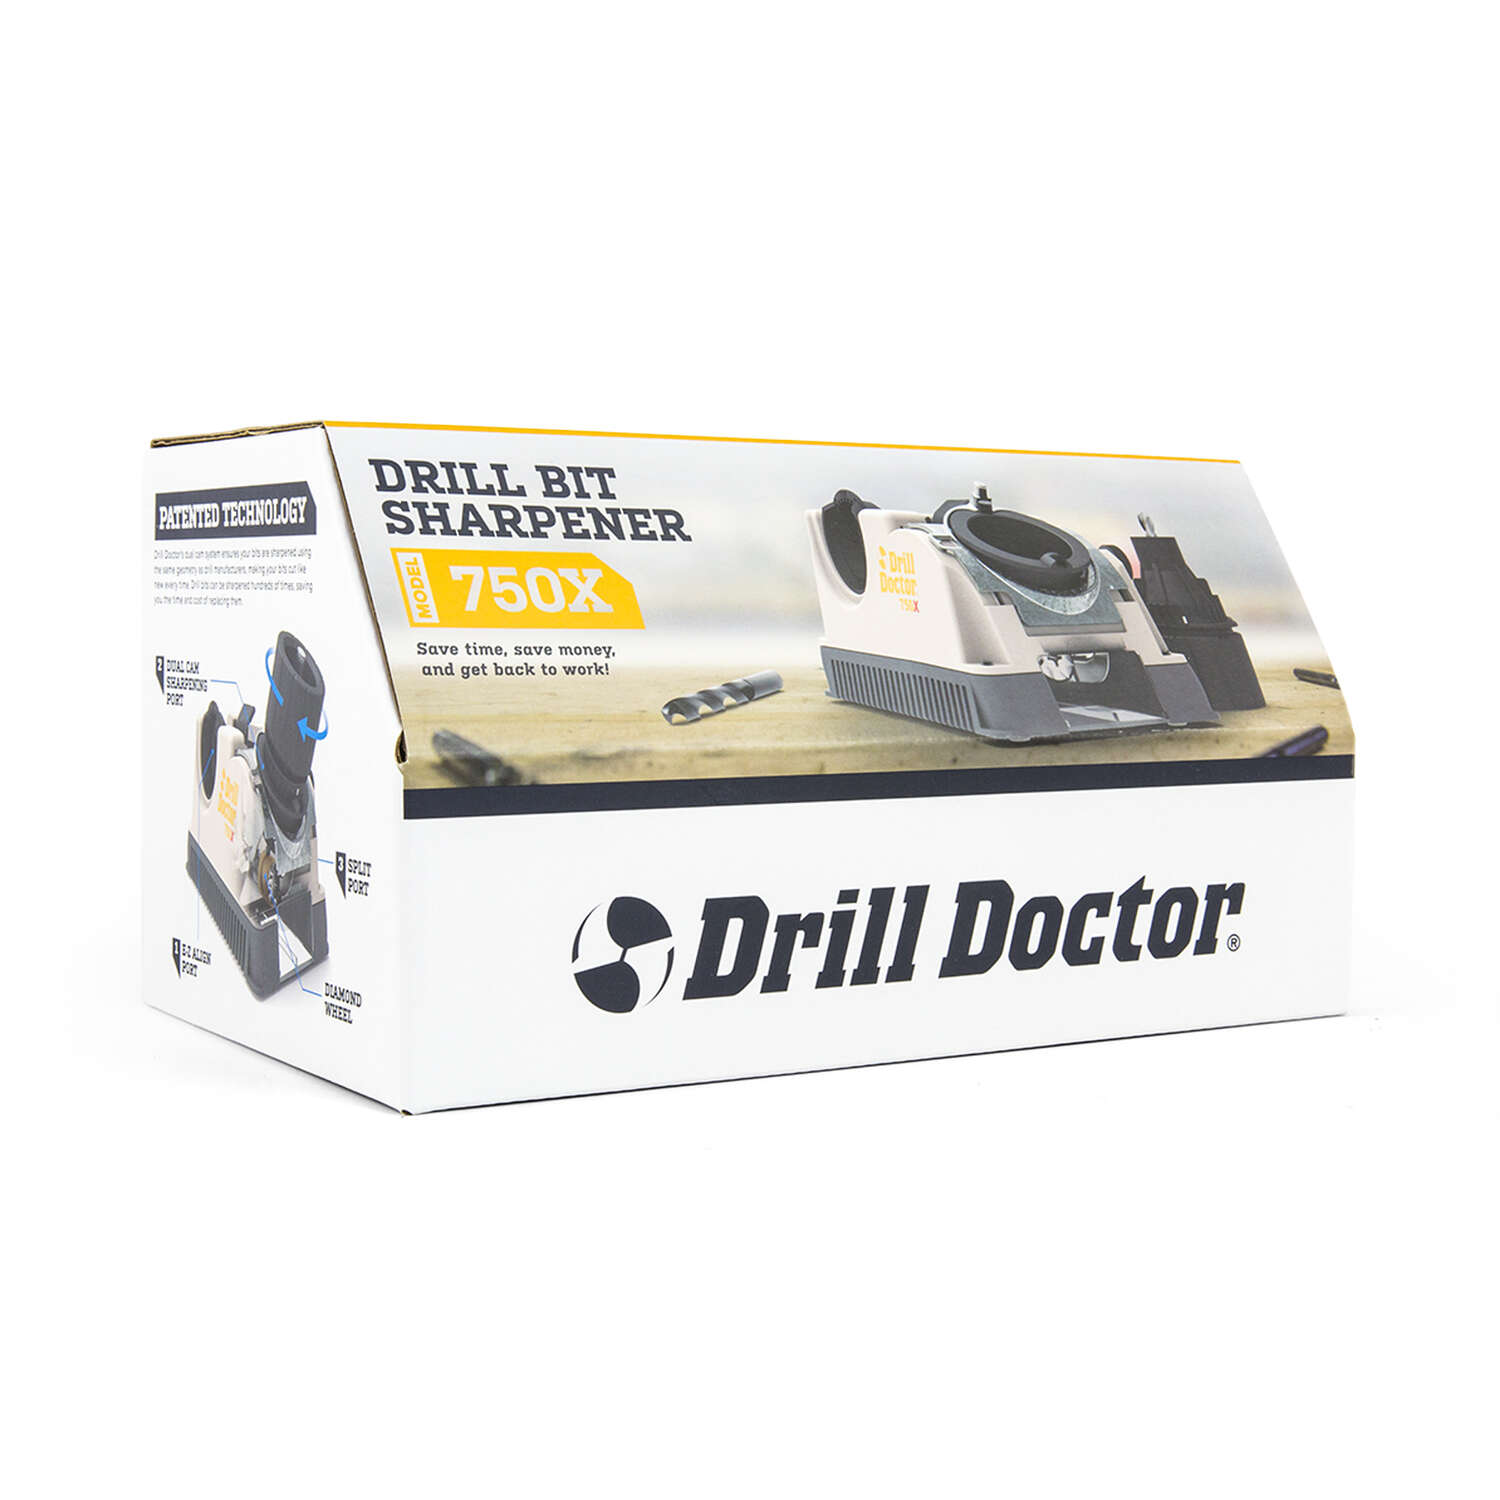 Drill Doctor  115 volts 1.75 amps Drill Bit Sharpener  15000 rpm 1 pc.